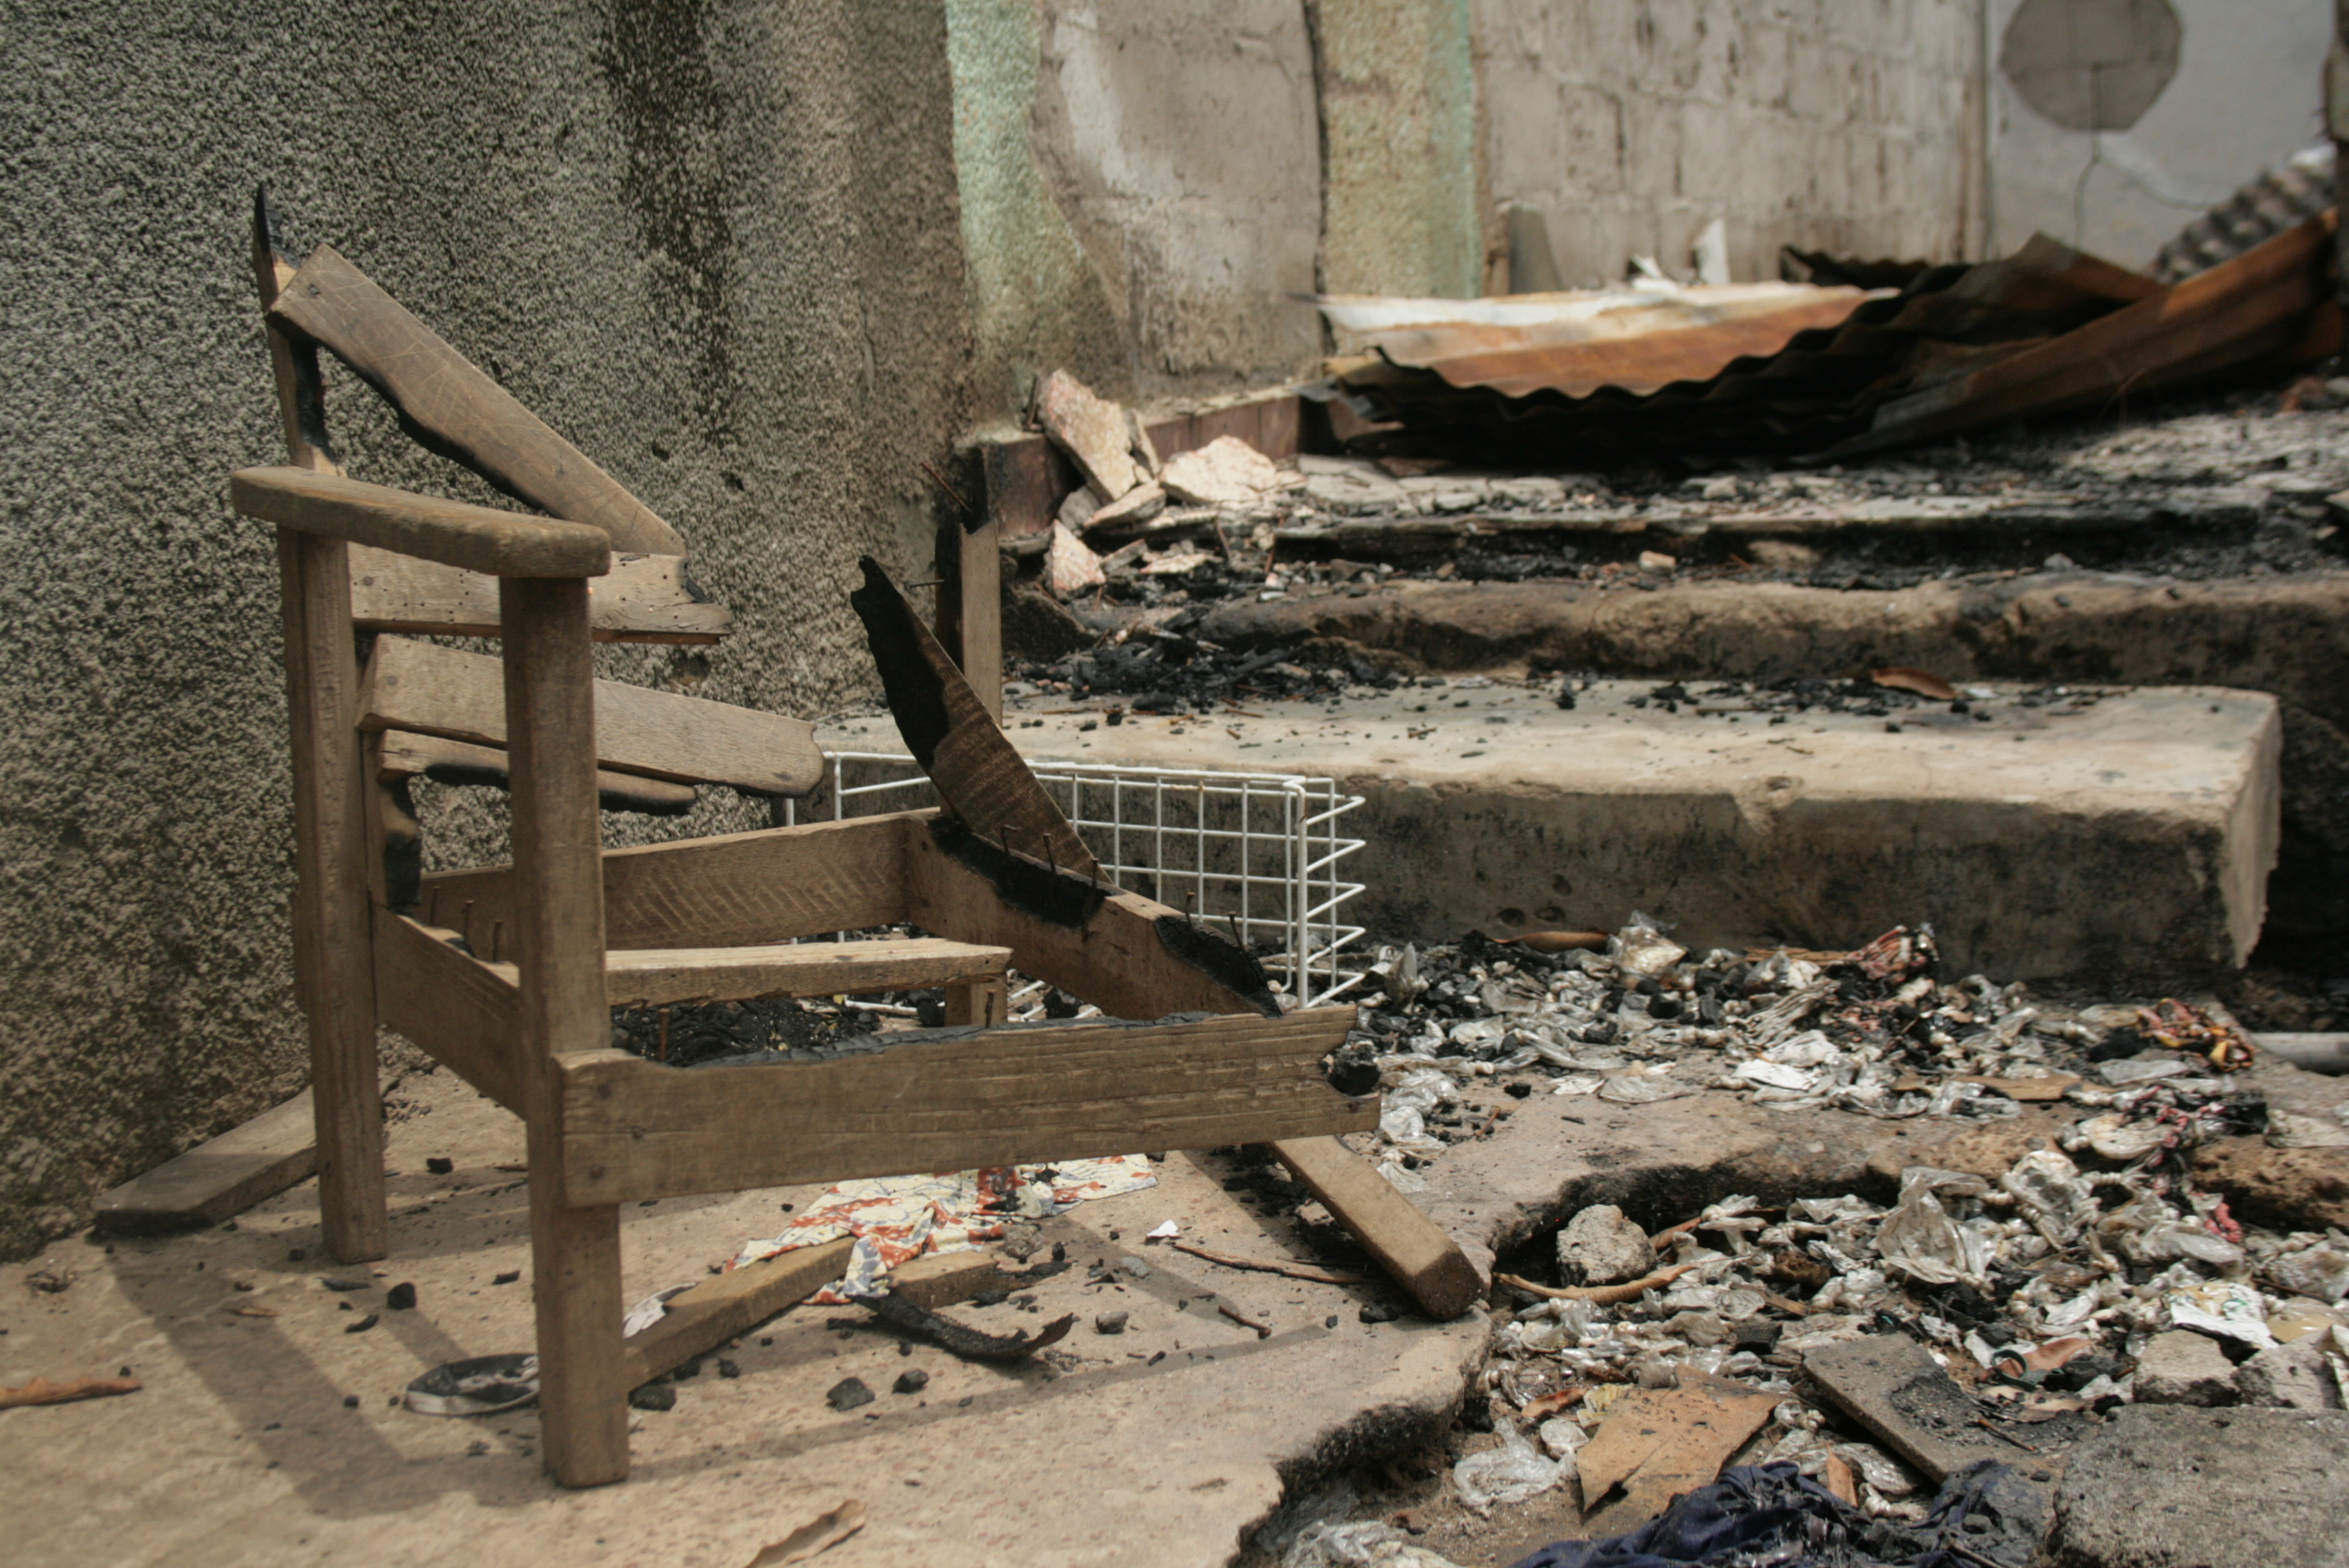 One of countless homes burned in a 29 March attack on the neighbourhood known as Carréfour in Duékoué, western Côte d'Ivoire. April 2011